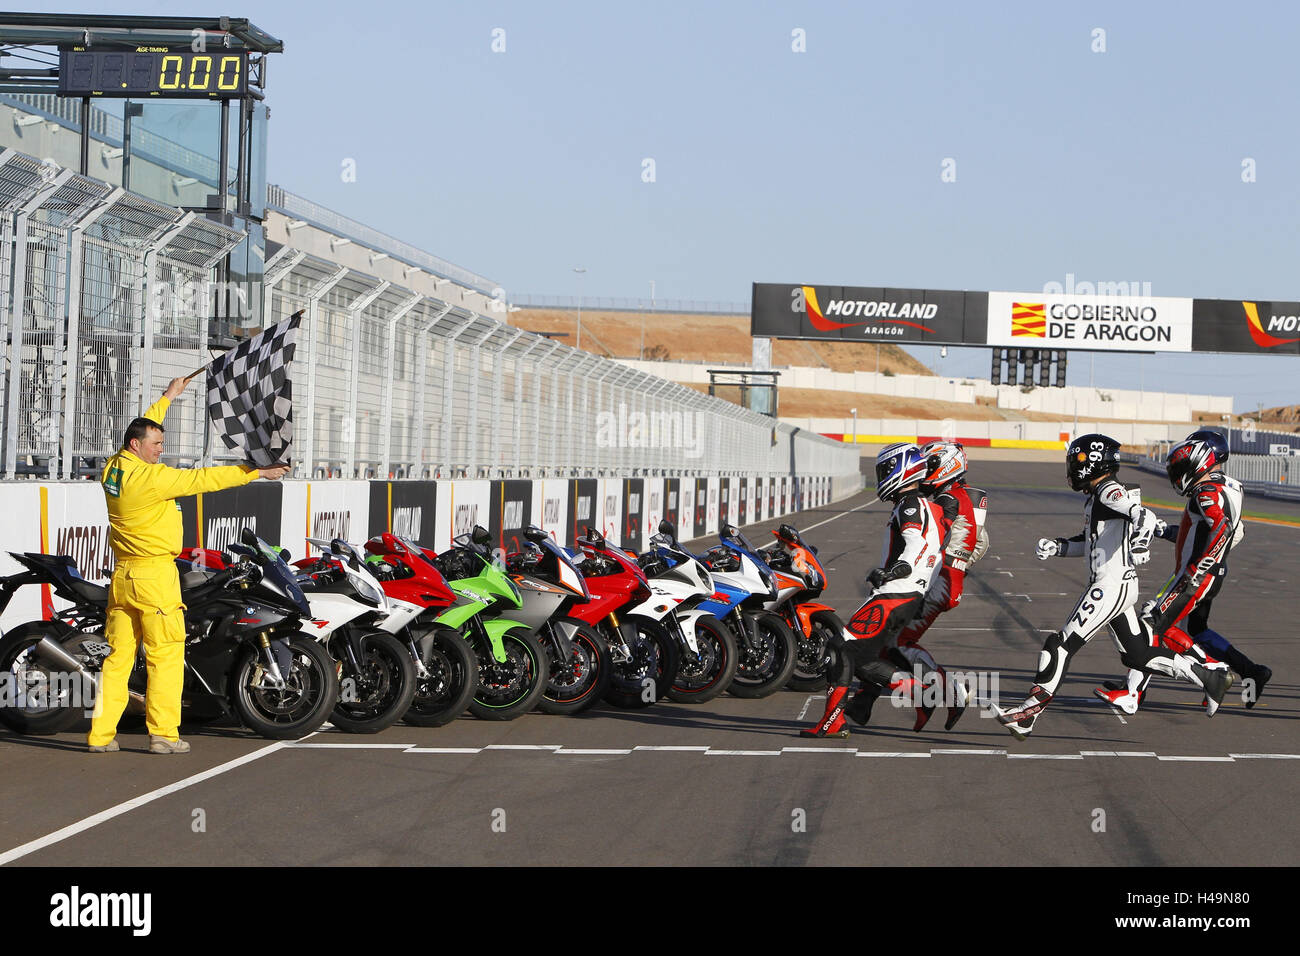 Motorcycle 1000cc comparison test, engine country Aragon Spain, supersportsman, drivers running to the motorcycles, - Stock Image